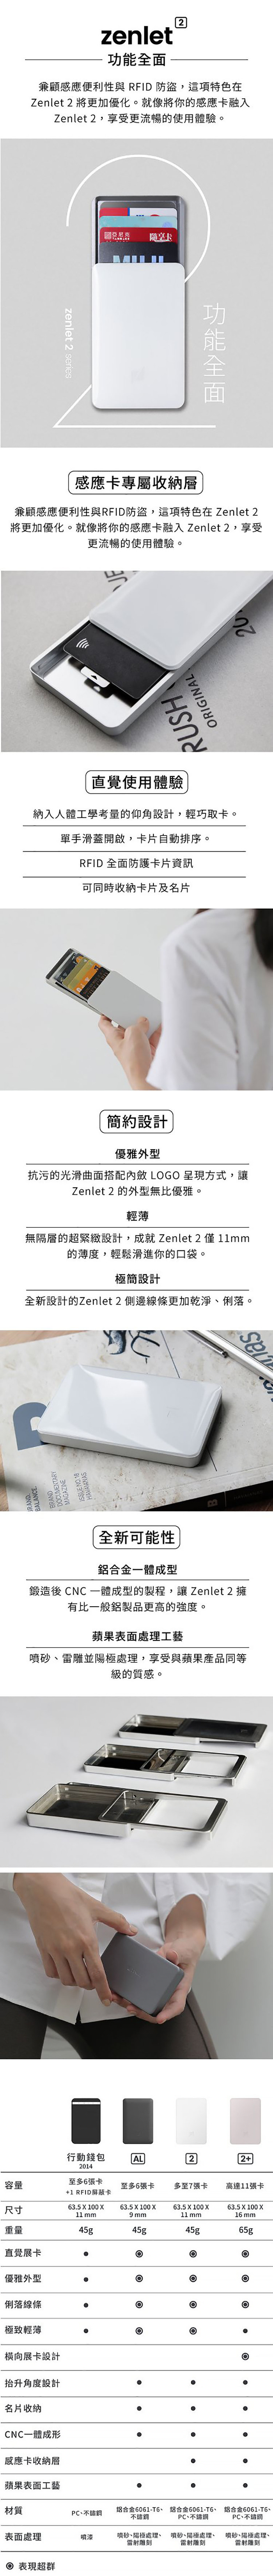 ZENLET|The Ingenious Wallet 行動錢包 2 series - Z2 功能全面